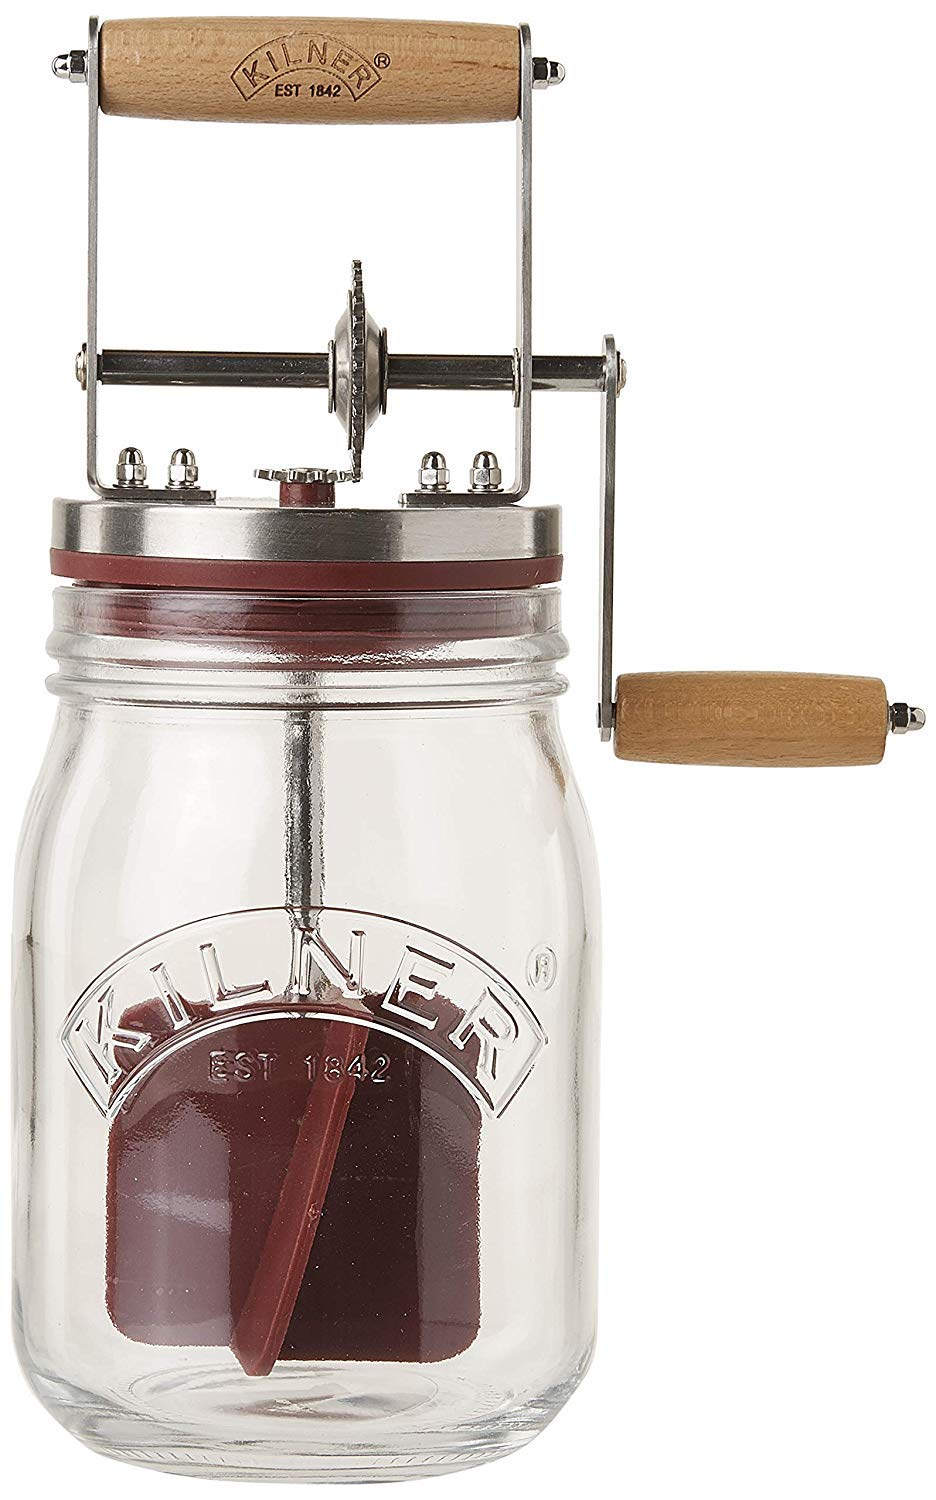 Kilner Vintage Glass Butter Churn; Delicious Homemade Butter in as Little as Ten Minutes; Large 34-Fluid Ounce Capacity; Recipes Included by Kilner (Image #1)